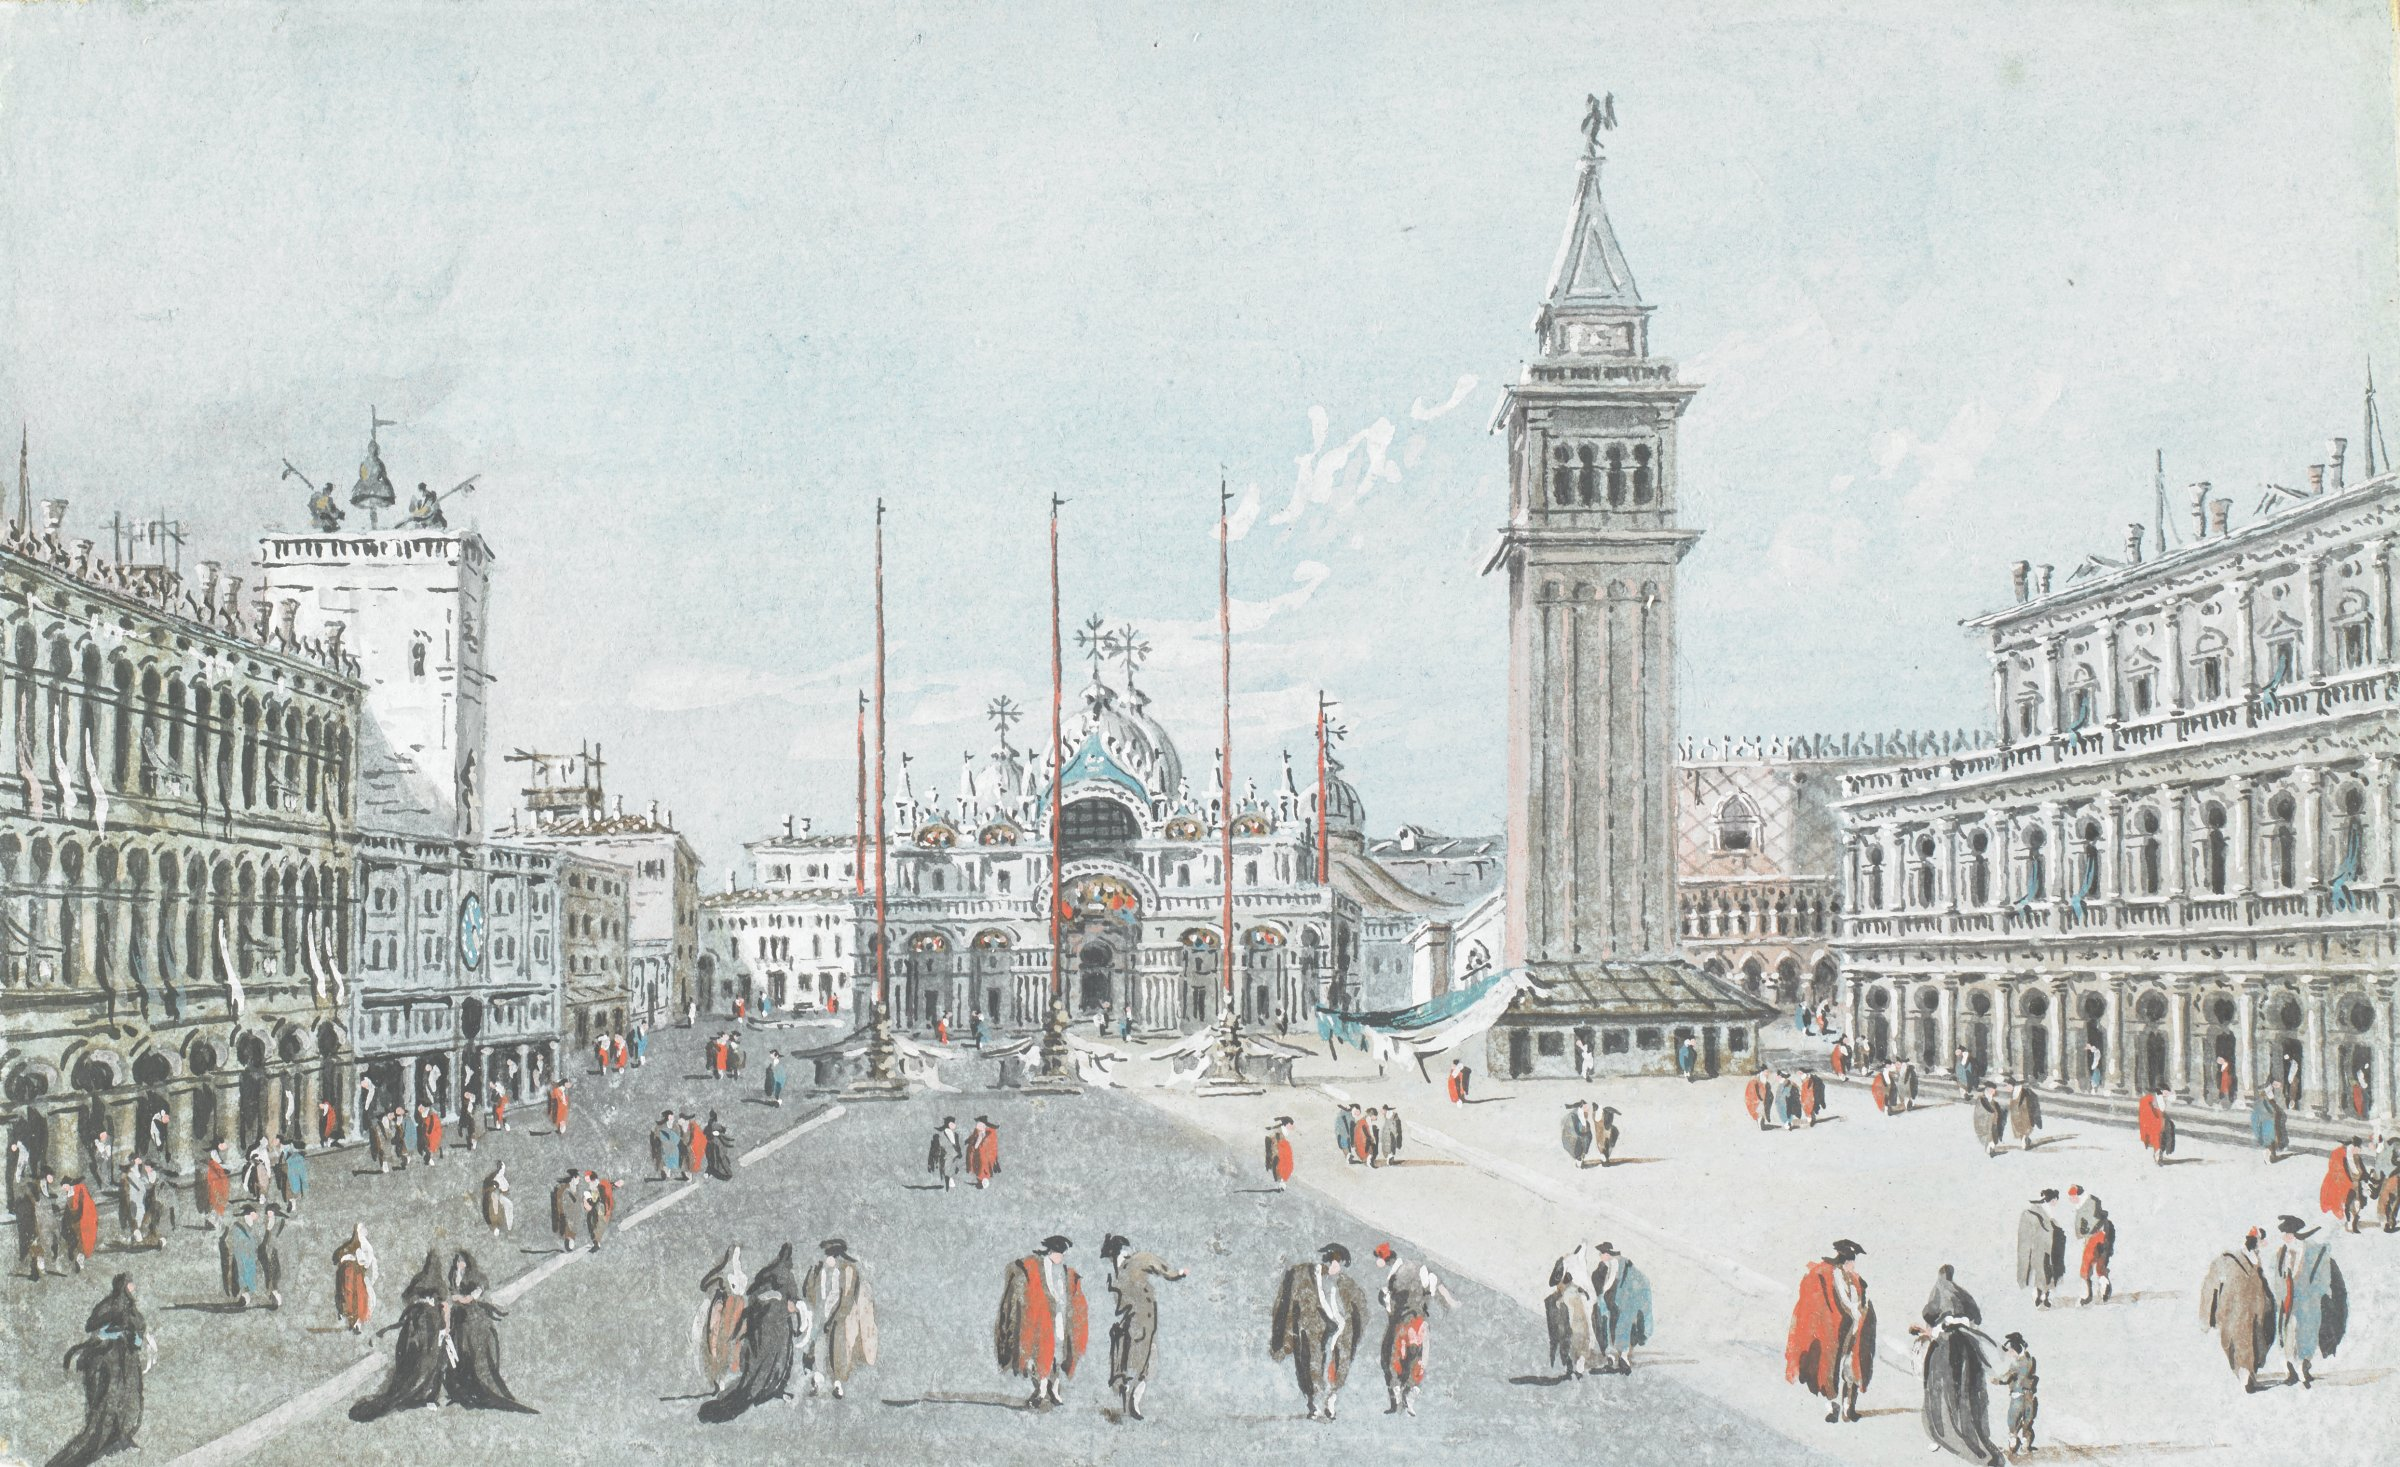 Scene of the Piazza San Marco in Venice filled with figures engaged in various activities. A basilica and clock tower are visible at the opposite end of the square.